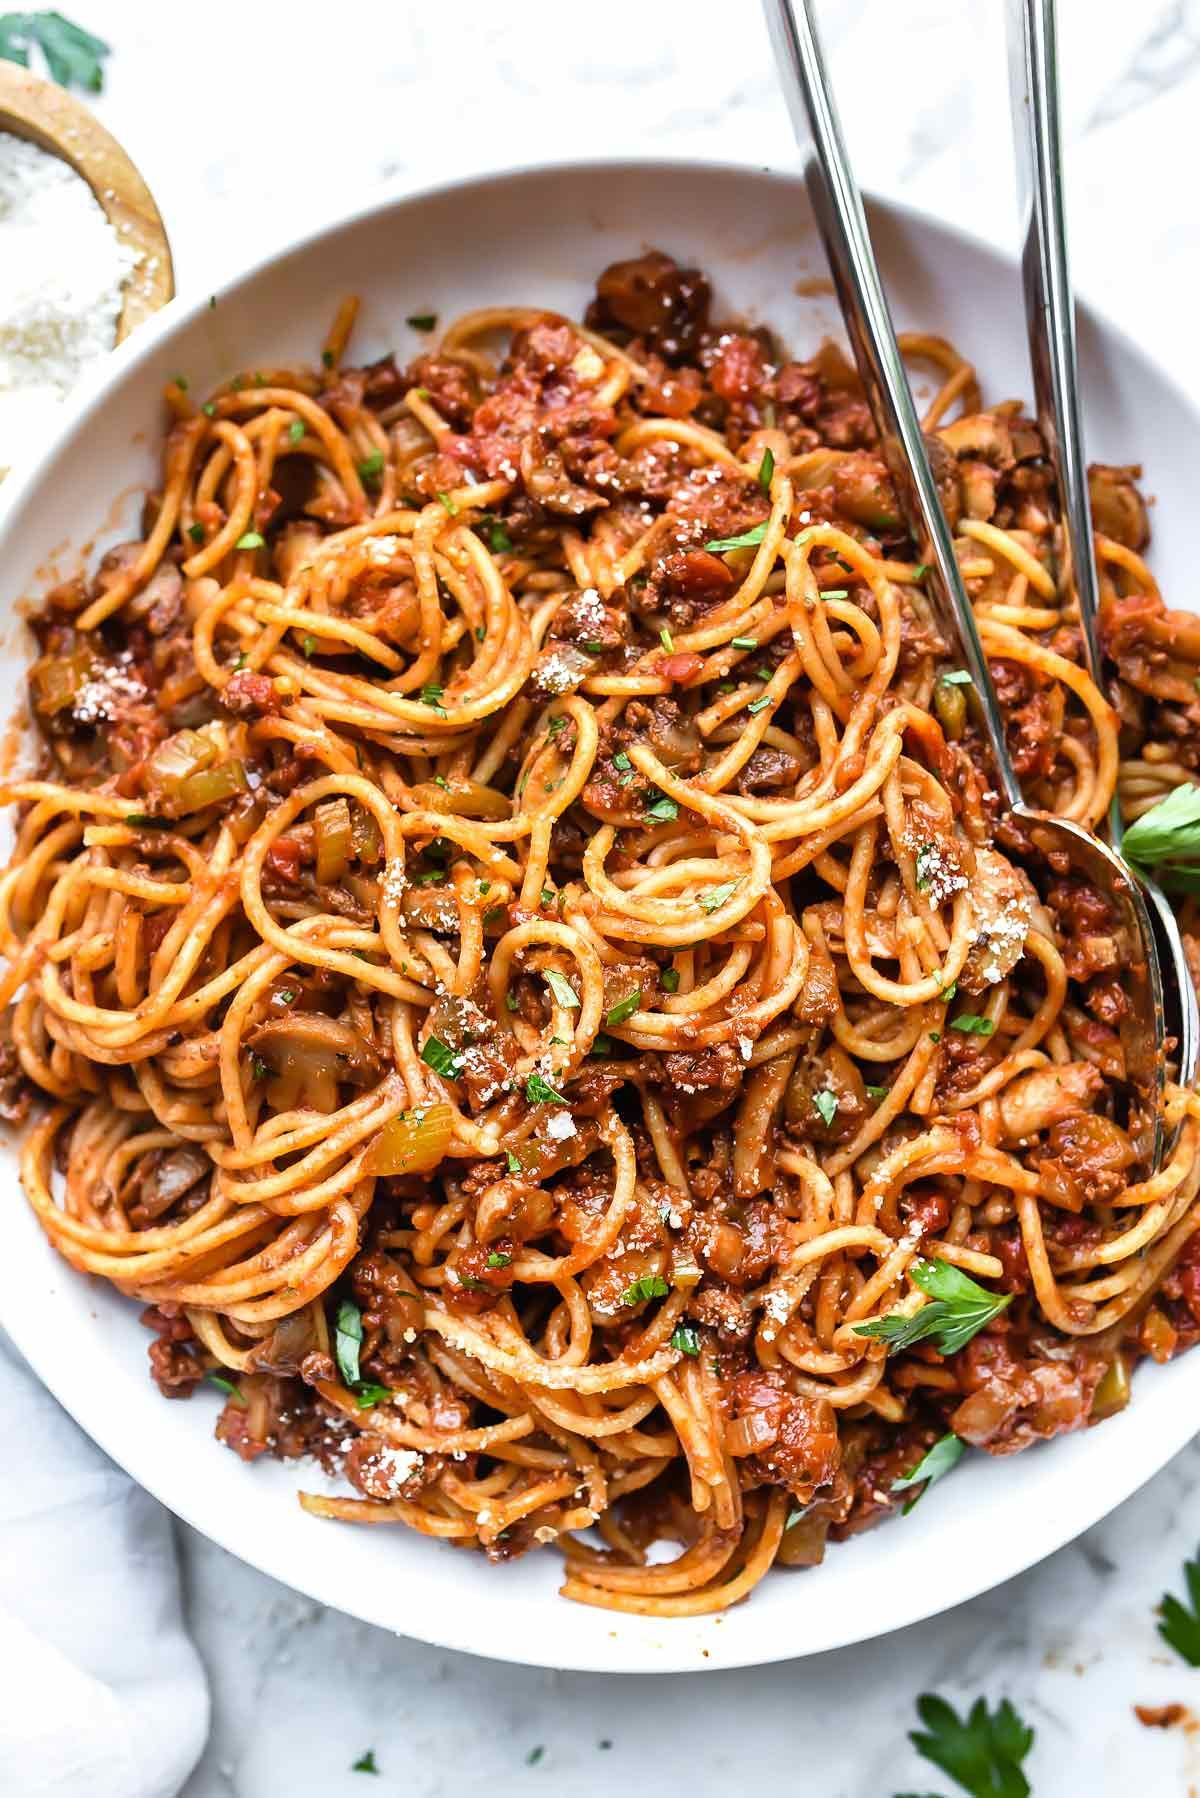 My Mom S Easy Homemade Spaghetti And Meat Sauce Foodiecrush Com Spaghetti Meat Sauce Bol Homemade Spaghetti Pasta Making Recipes Homemade Spaghetti Sauce